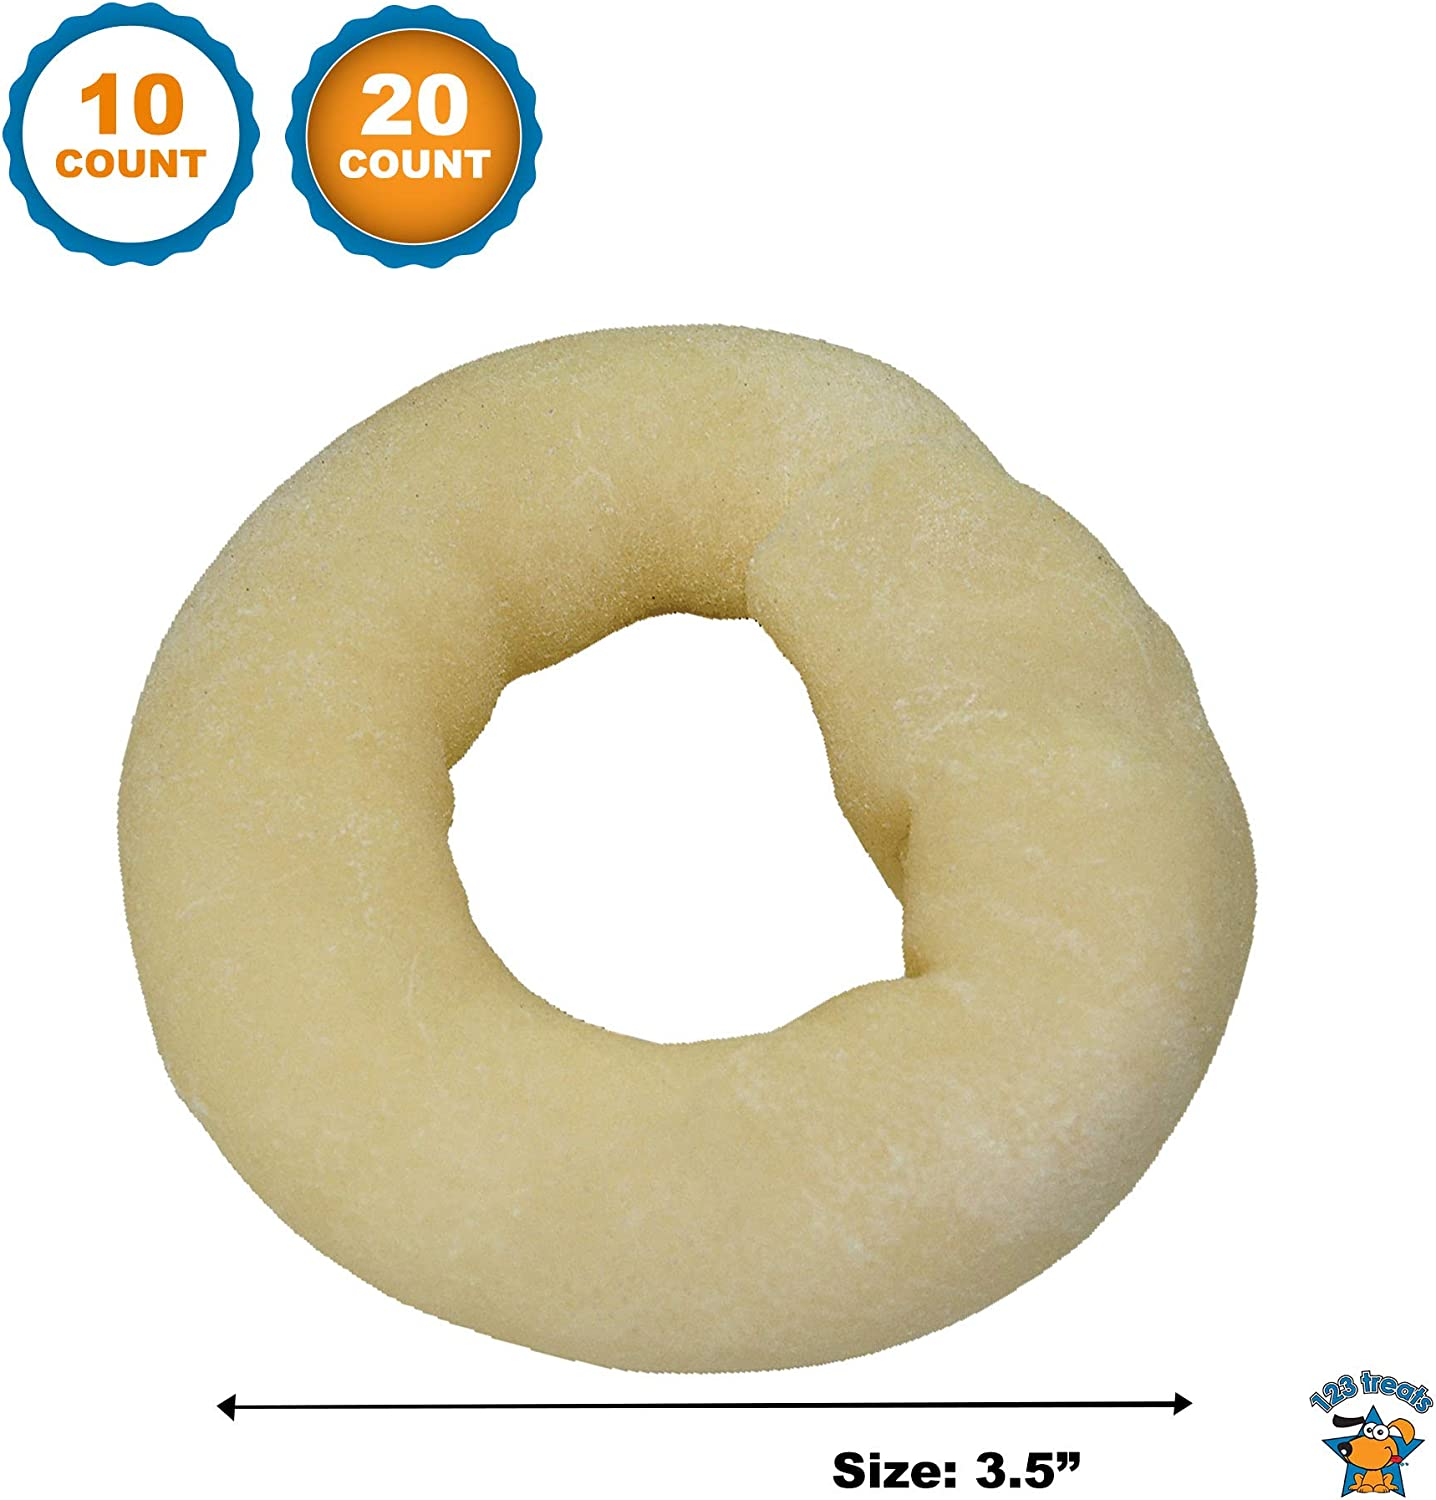 123 Treats Rawhide Donuts Chews for Dogs 3.5 inches – Beefhide Donut chew for Pets Packed in The USA